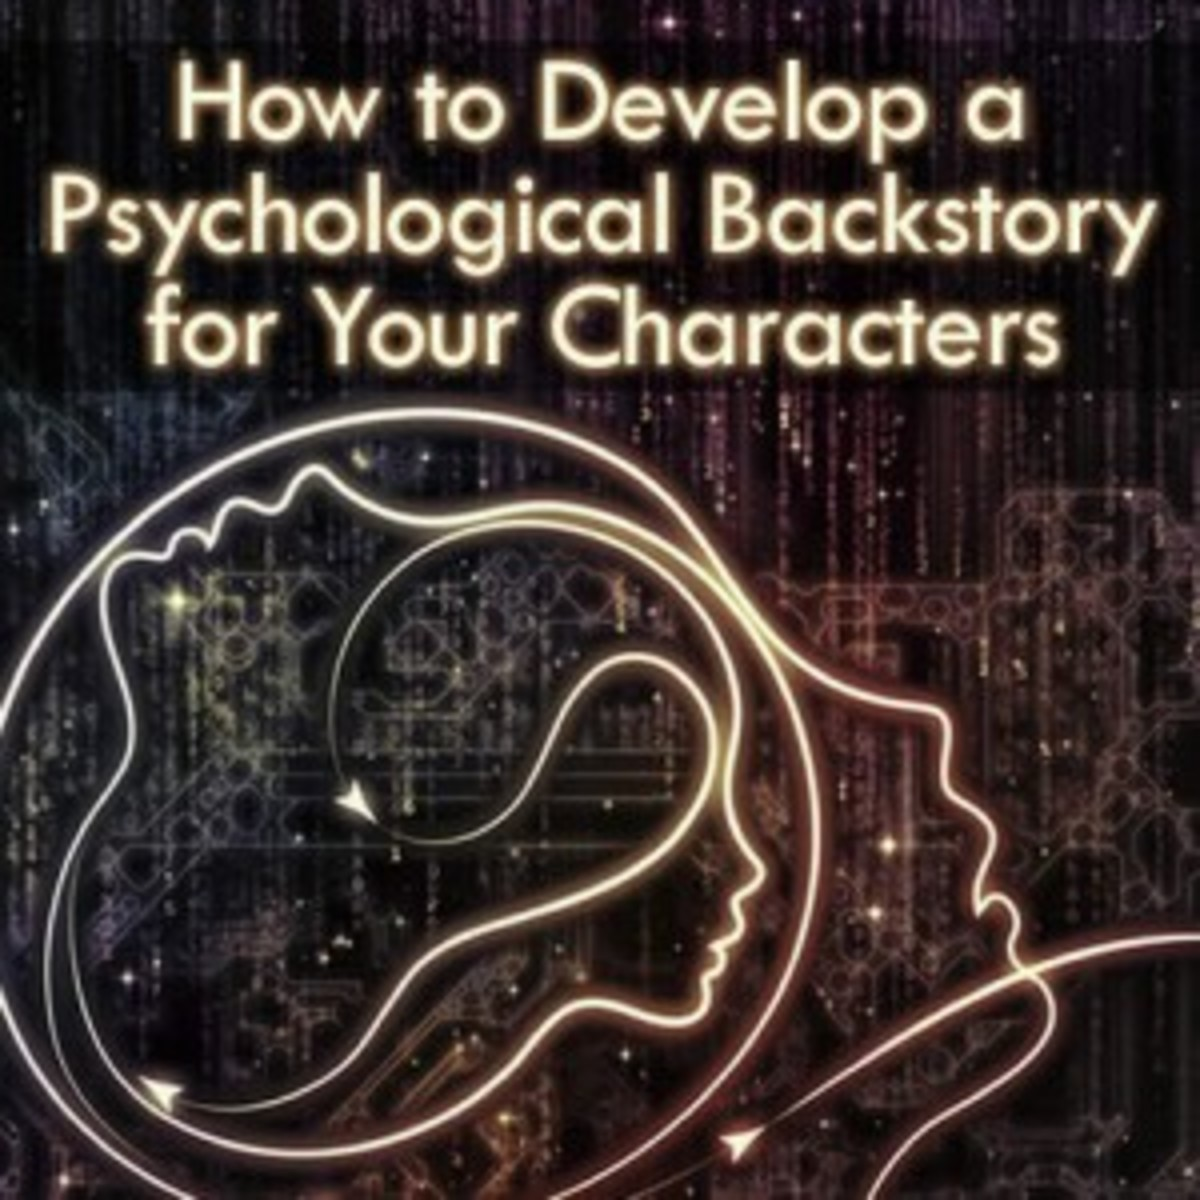 psychological-backstory-500.jpg_medium-1